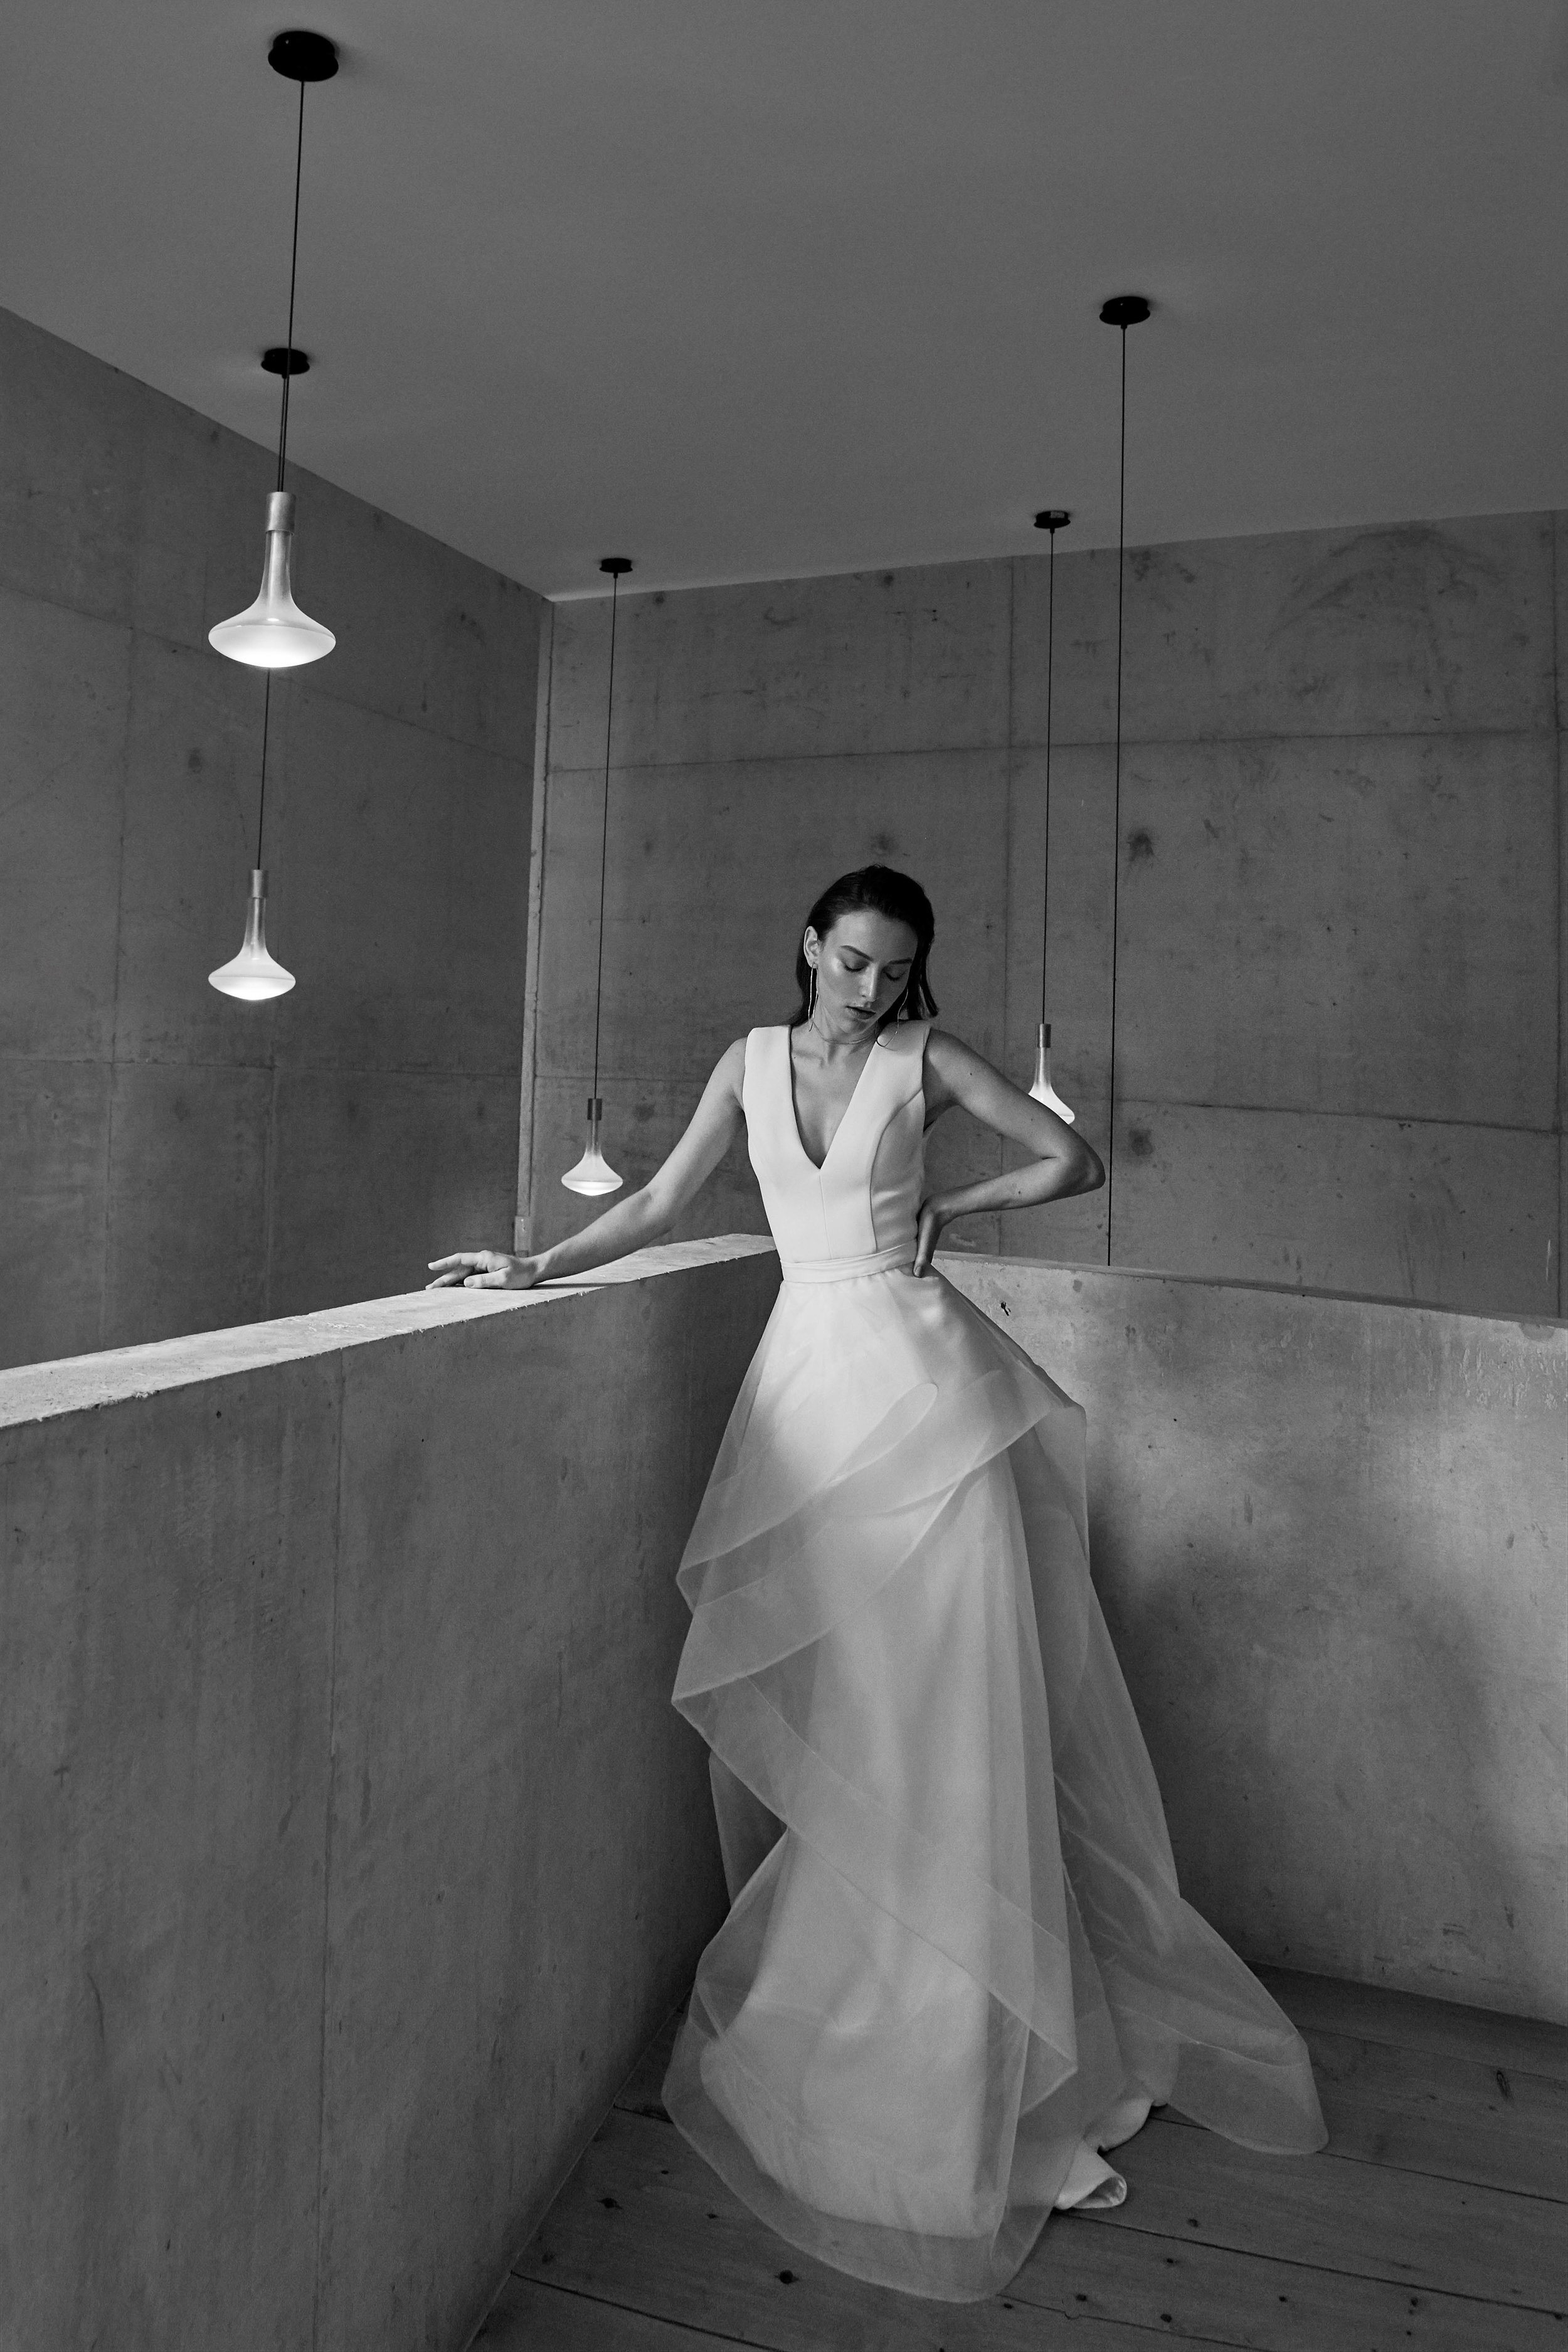 Broome Bridal Dress with Orchid Skirt by CHOSEN by ONE DAY BRIDAL - Empire Collection   View on LOVE FIND CO.